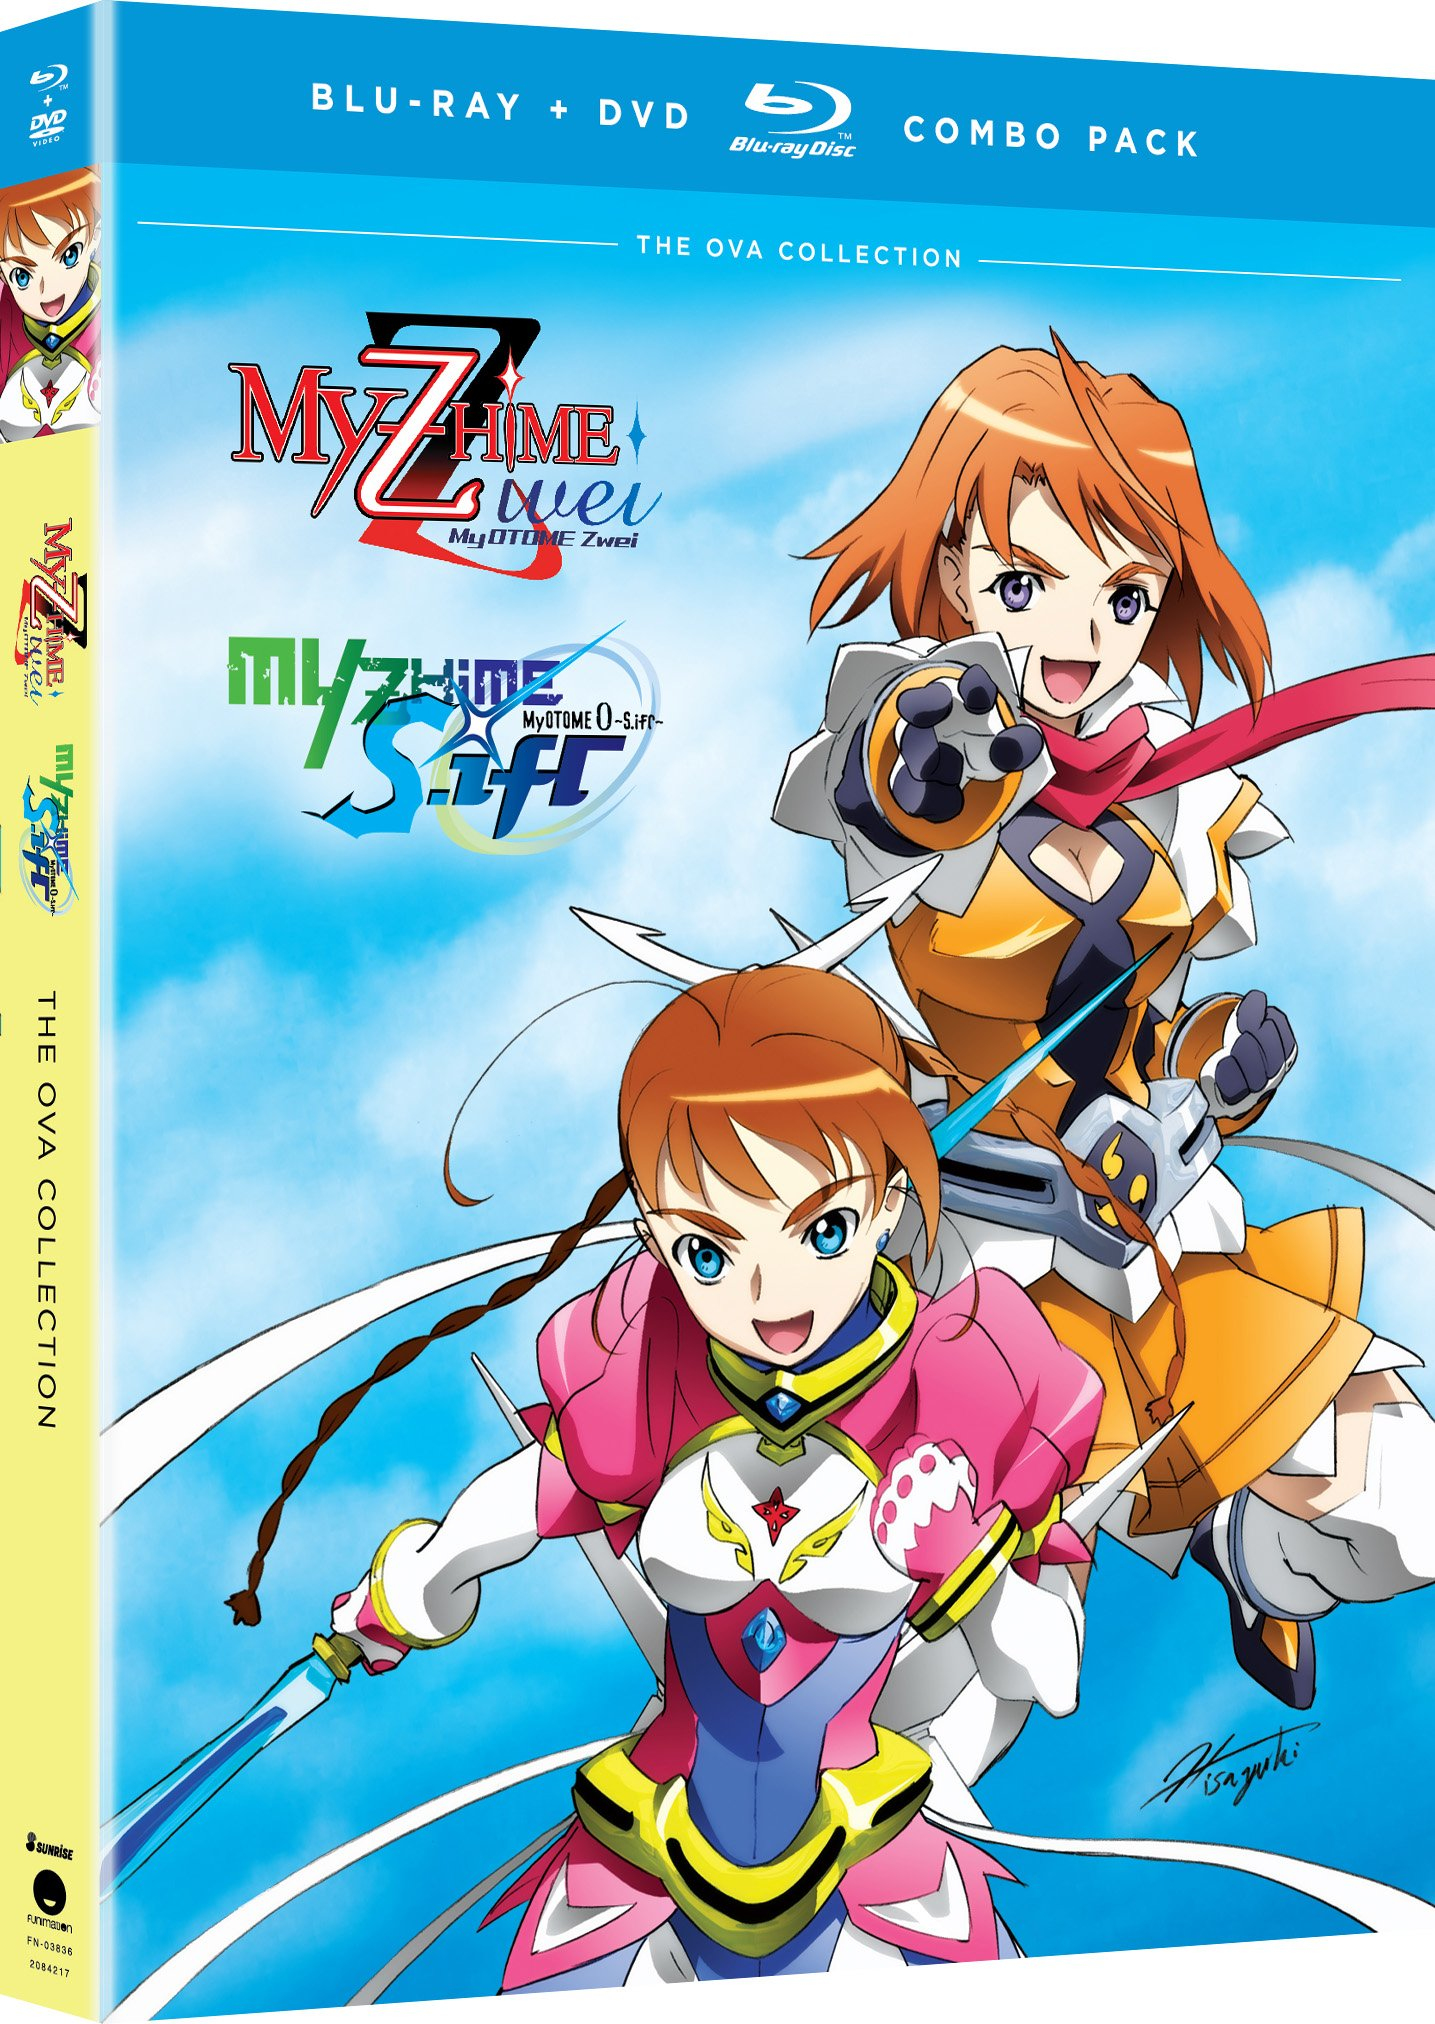 Blu-ray : My-Otome Zwei + My-Otome 0: S.ifr (With DVD, Boxed Set, 3 Disc)